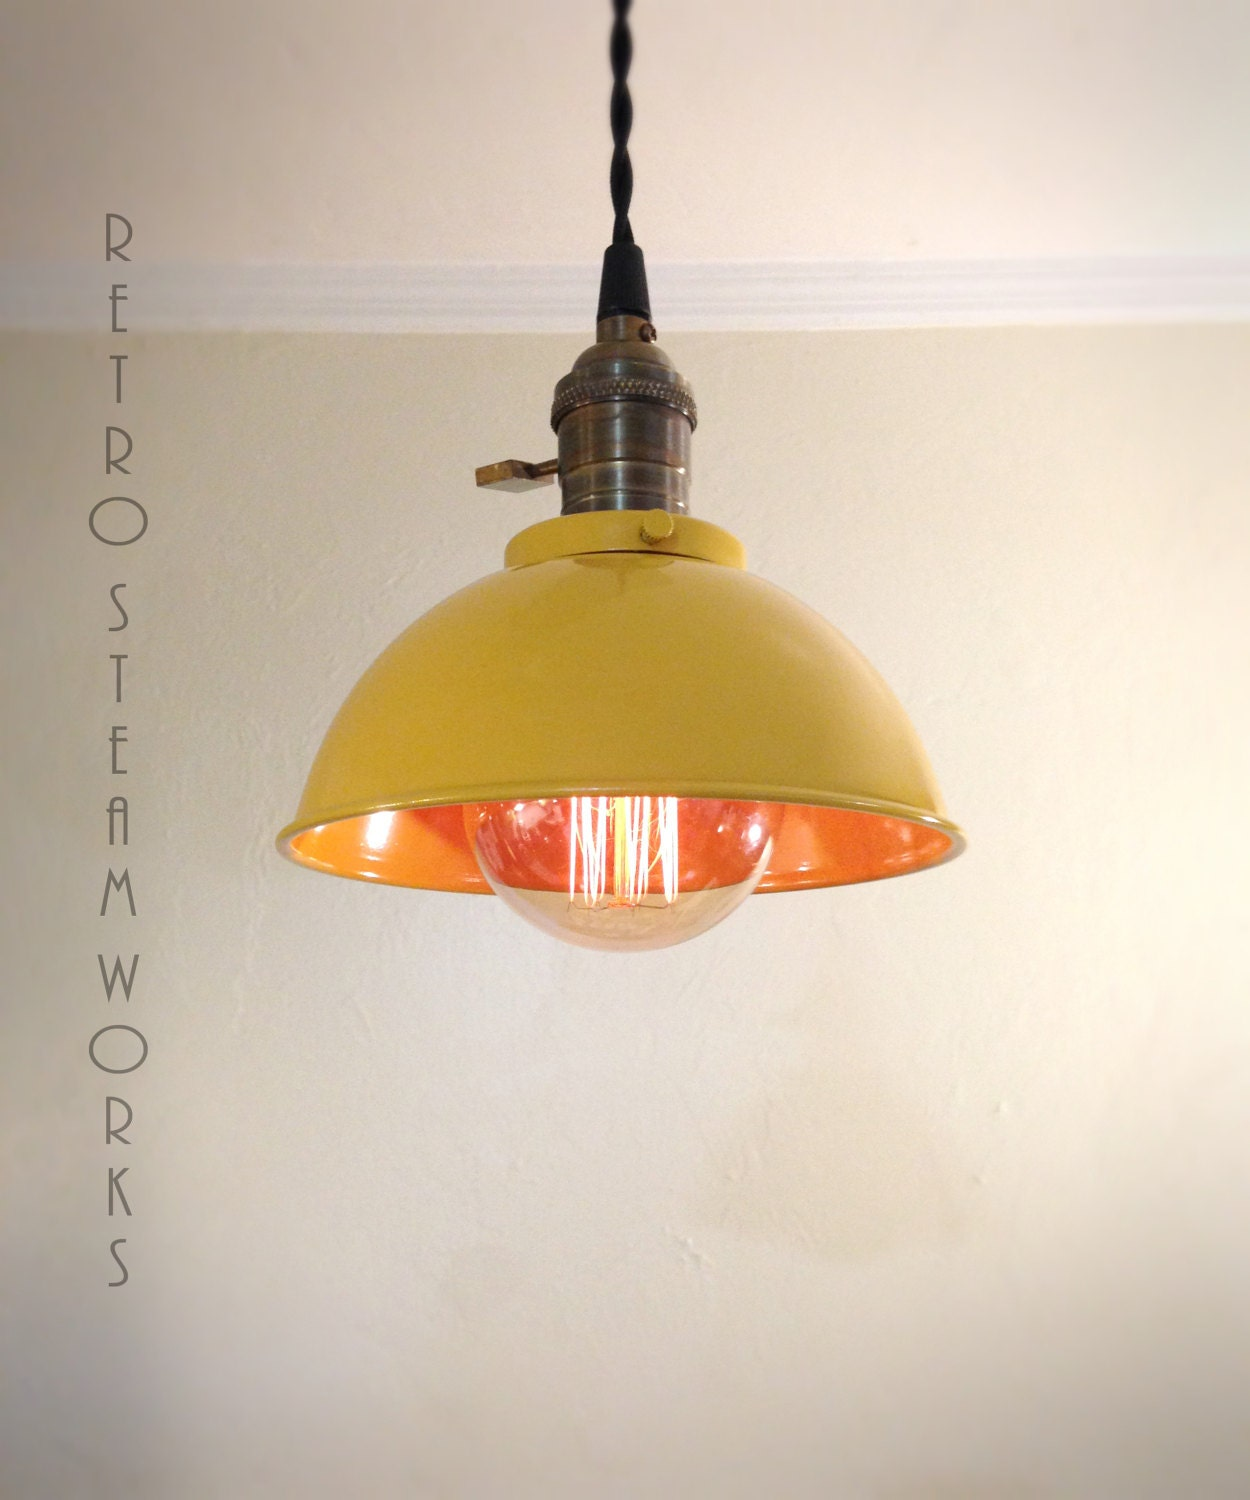 Ceiling Lights Yellow : Ceiling pendant light yellow rustic metal hanging loft lamp